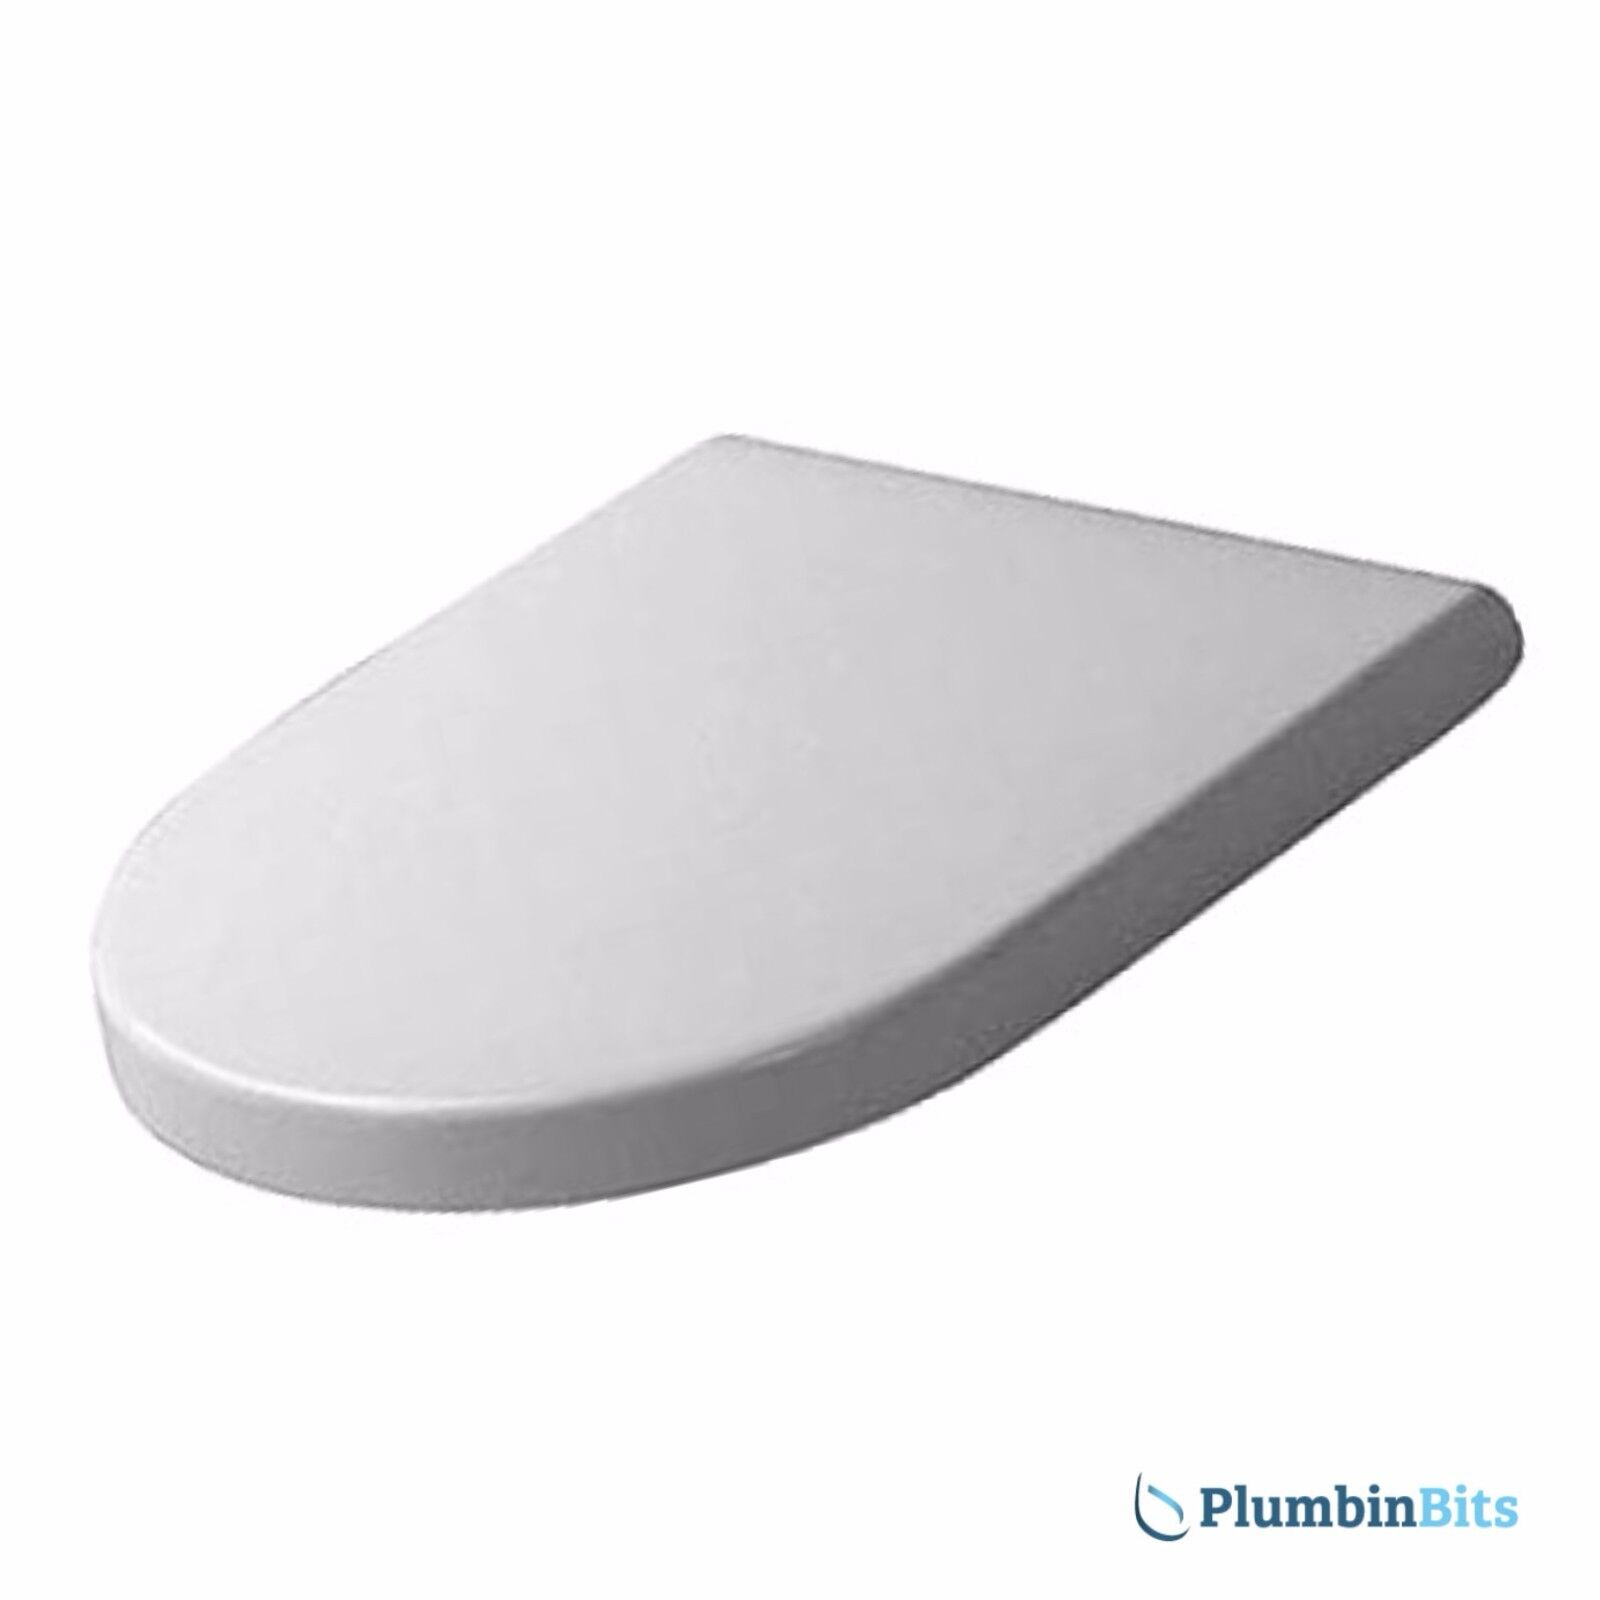 Ebay DURAVIT STARCK 3 REPLACEMENT TOILET SEAT & COVER SOFT CLOSE ...